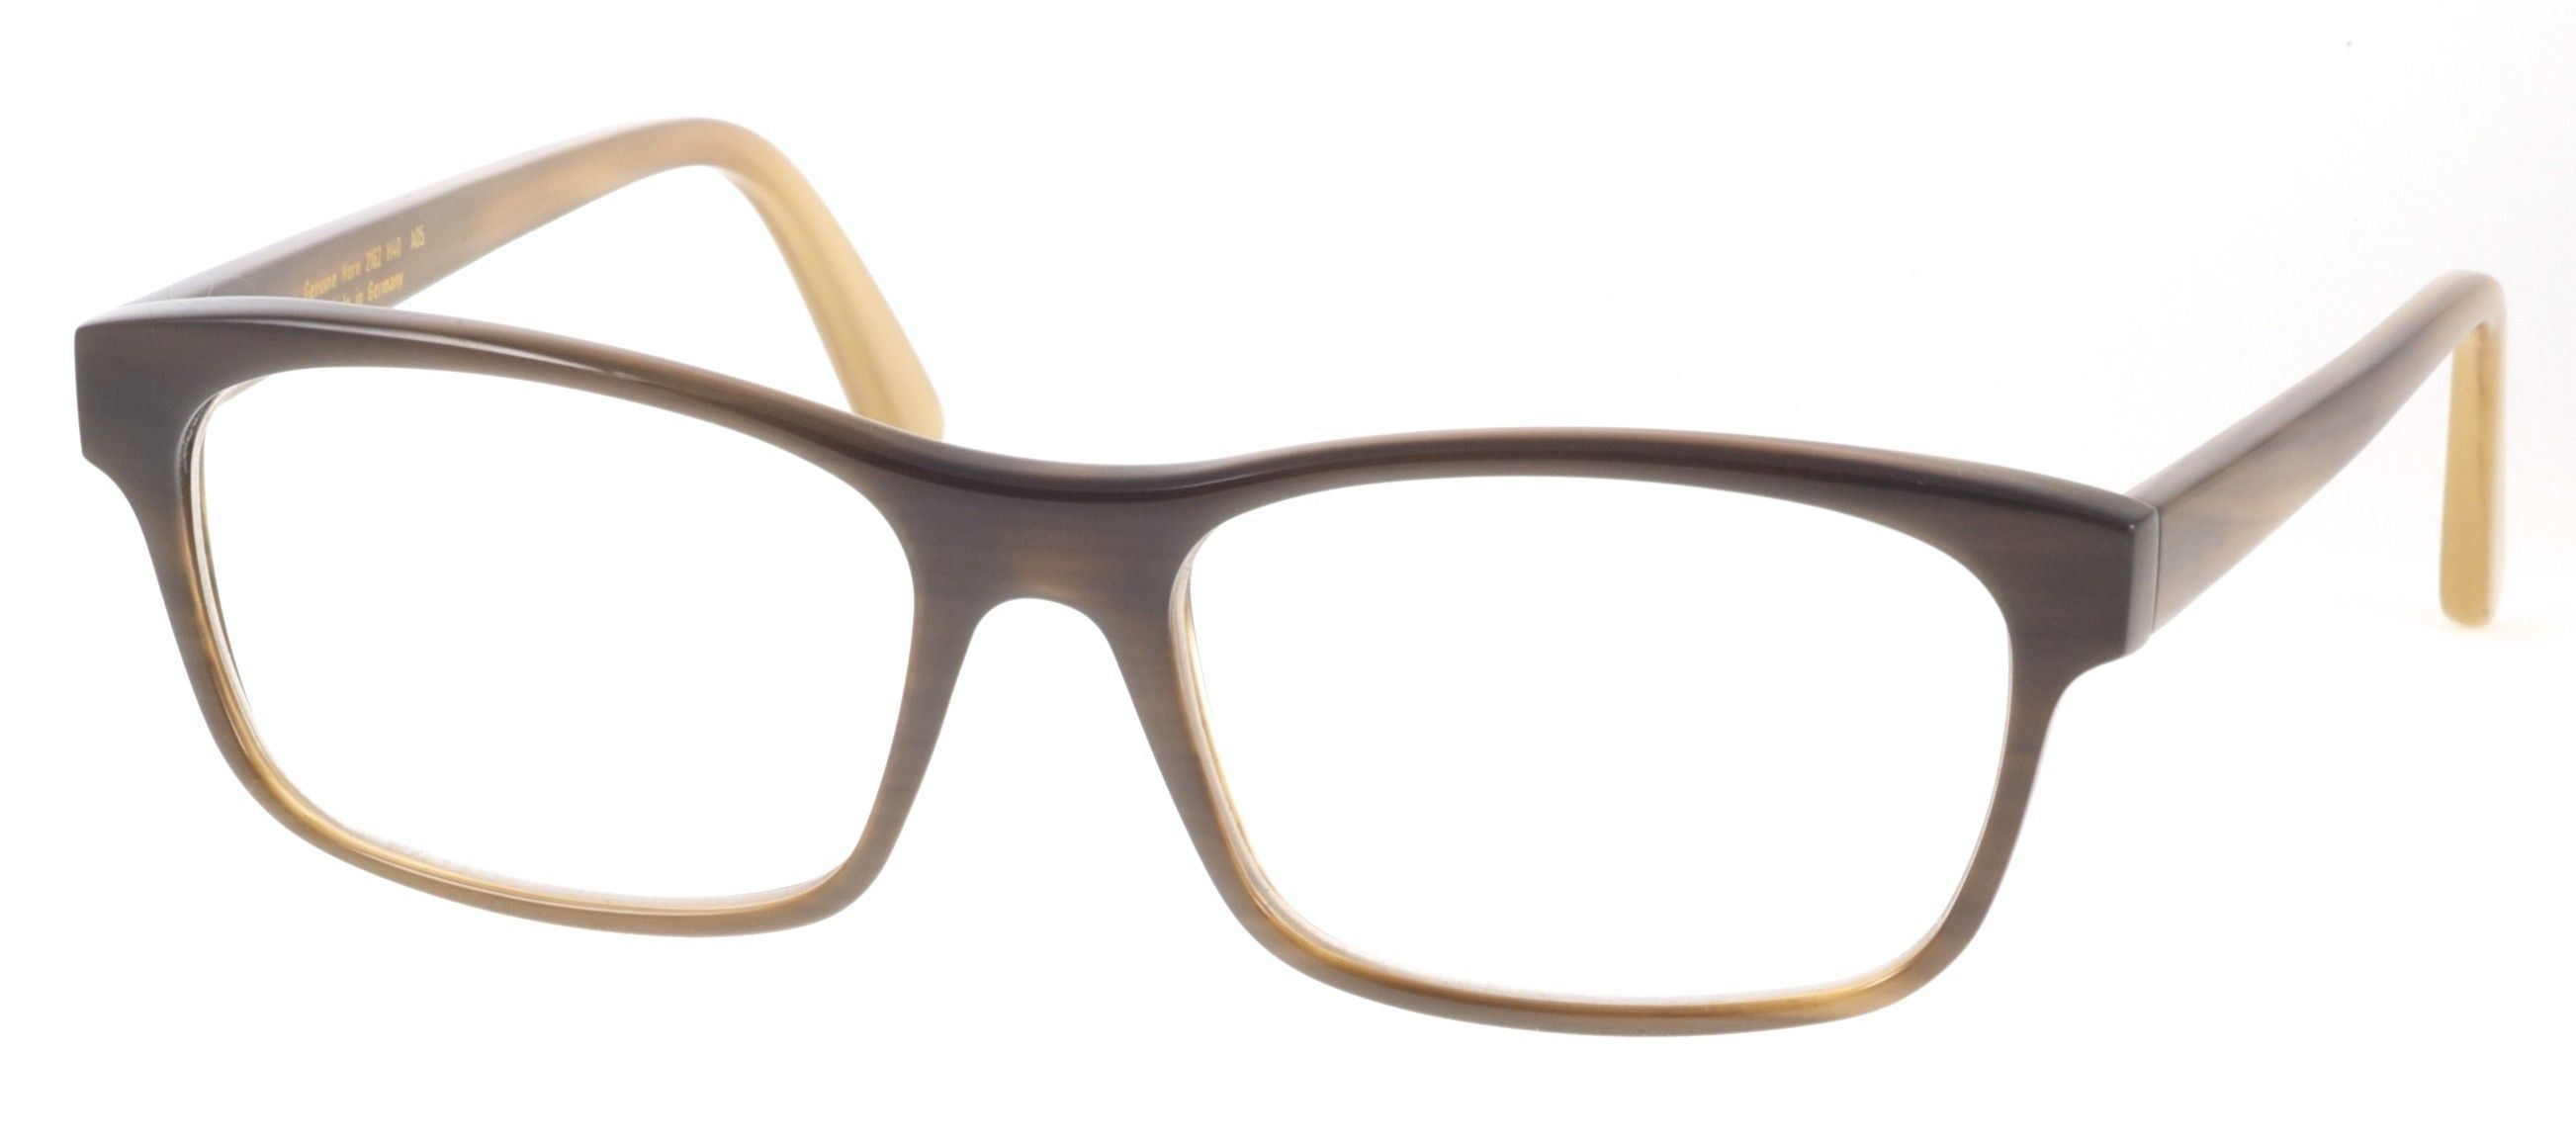 buy hoffmann natural eyewear h 2162 glasses online in person a curated collection of hoffmann natural eyewear glasses at eyewear concierge